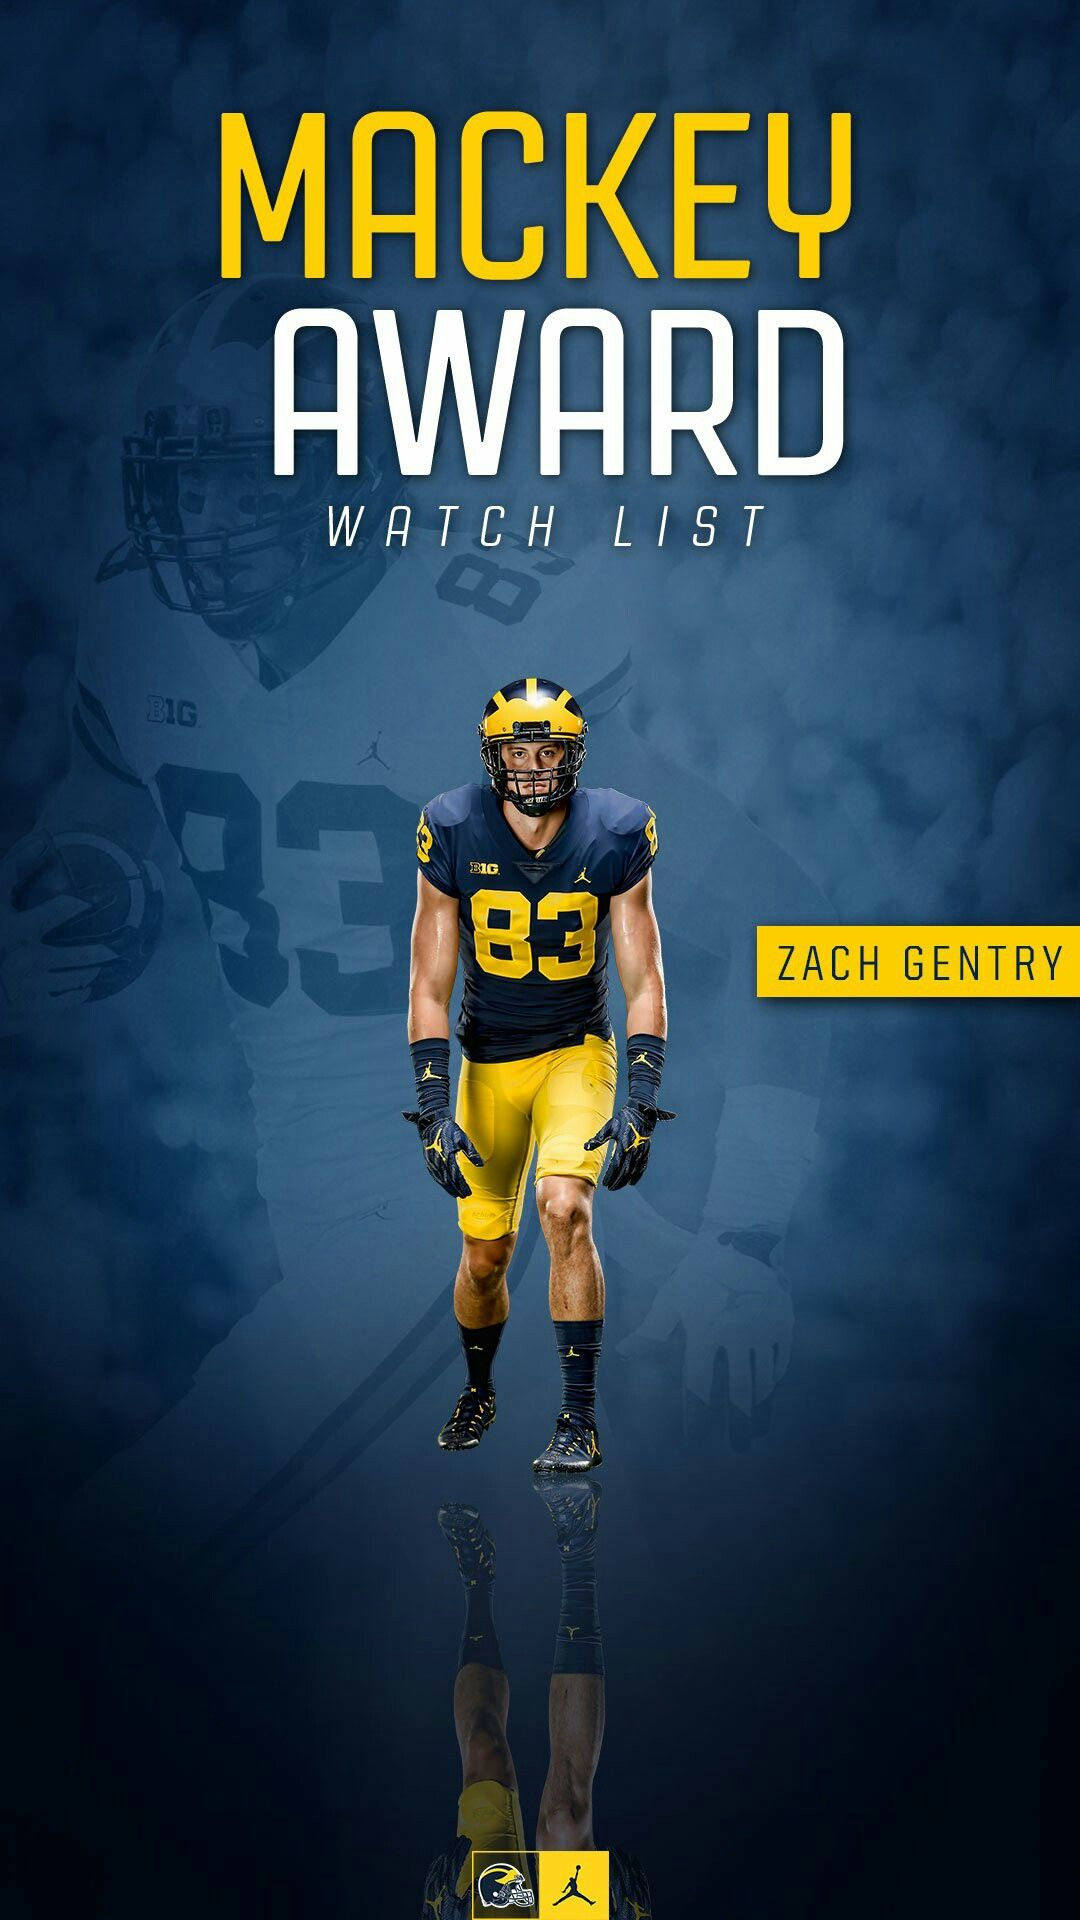 Pin by tmv on Sports Go Blue💙💛 (With images) Michigan